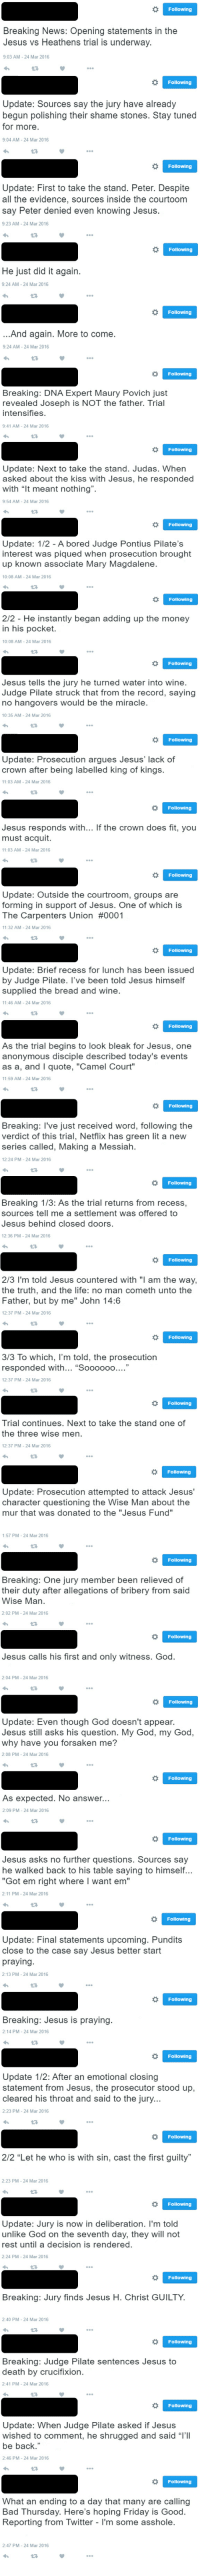 """Jesus vs Heathens - The Trial of the Millennium: Following  Breaking News: Opening statements in the  Jesus vs Heathens trial is underway.  9:03 AM 24 Mar 2016  Following  Update: Sources say the jury have already  begun polishing their shame Stones. Stay tuned  for more.  9:04 AM 24 Mar 2016  Following  Update: First to take the stand. Peter. Despite  all the evidence, sources inside the courtoom  say Peter denied even knowing Jesus.  9:23 AM 24 Mar 2016  o Following  He just did it again.  9:24 AM 24 Mar 2016  Following  And again. More to come.  9:24 AM 24 Mar 2016   Following  Breaking: DNA Expert Maury Povich just  revealed Joseph is NOT the father. Trial  intensifies.  9:41 AM 24 Mar 2016  Following  Update: Next to take the stand. Judas. When  asked about the kiss with Jesus, he responded  with """"It meant nothing"""".  9:54 AM 24 Mar 2016  Following  Update: 1/2 A bored Judge Pontius Pilate's  interest was piqued when prosecution brought  up known associate Mary Magdalene.  10:08 AM 24 Mar 2016  Following  2/2 He instantly began adding up the money  in his pocket.  10:08 AM 24 Mar 2016  Following  Jesus tells the jury he turned water into wine.  Judge Pilate struck that from the record, saying  no hangovers would be the miracle.  10:35 AM 24 Mar 2016   Following  Update: Prosecution argues Jesus' lack of  crown after being labelled king of kings.  11:03 AM 24 Mar 2016  Following  Jesus responds with  If the crown does fit, you  must acquit.  11:03 AM 24 Mar 2016  Following  Update: Outside the courtroom, groups are  forming in support of Jesus. One of which is  The Carpenters Union #0001  11:32 AM 24 Mar 2016  Following  Update: Brief recess for lunch has been issued  by Judge Pilate. I've been told Jesus himself  supplied the bread and wine.  11:46 AM 24 Mar 2016  Following  As the trial begins to look bleak for Jesus, one  anonymous disciple described today's events  as a, and I quote, """"Camel Court""""  11:59 AM-24 Mar 2016   Following  Breaking: l've just receive"""